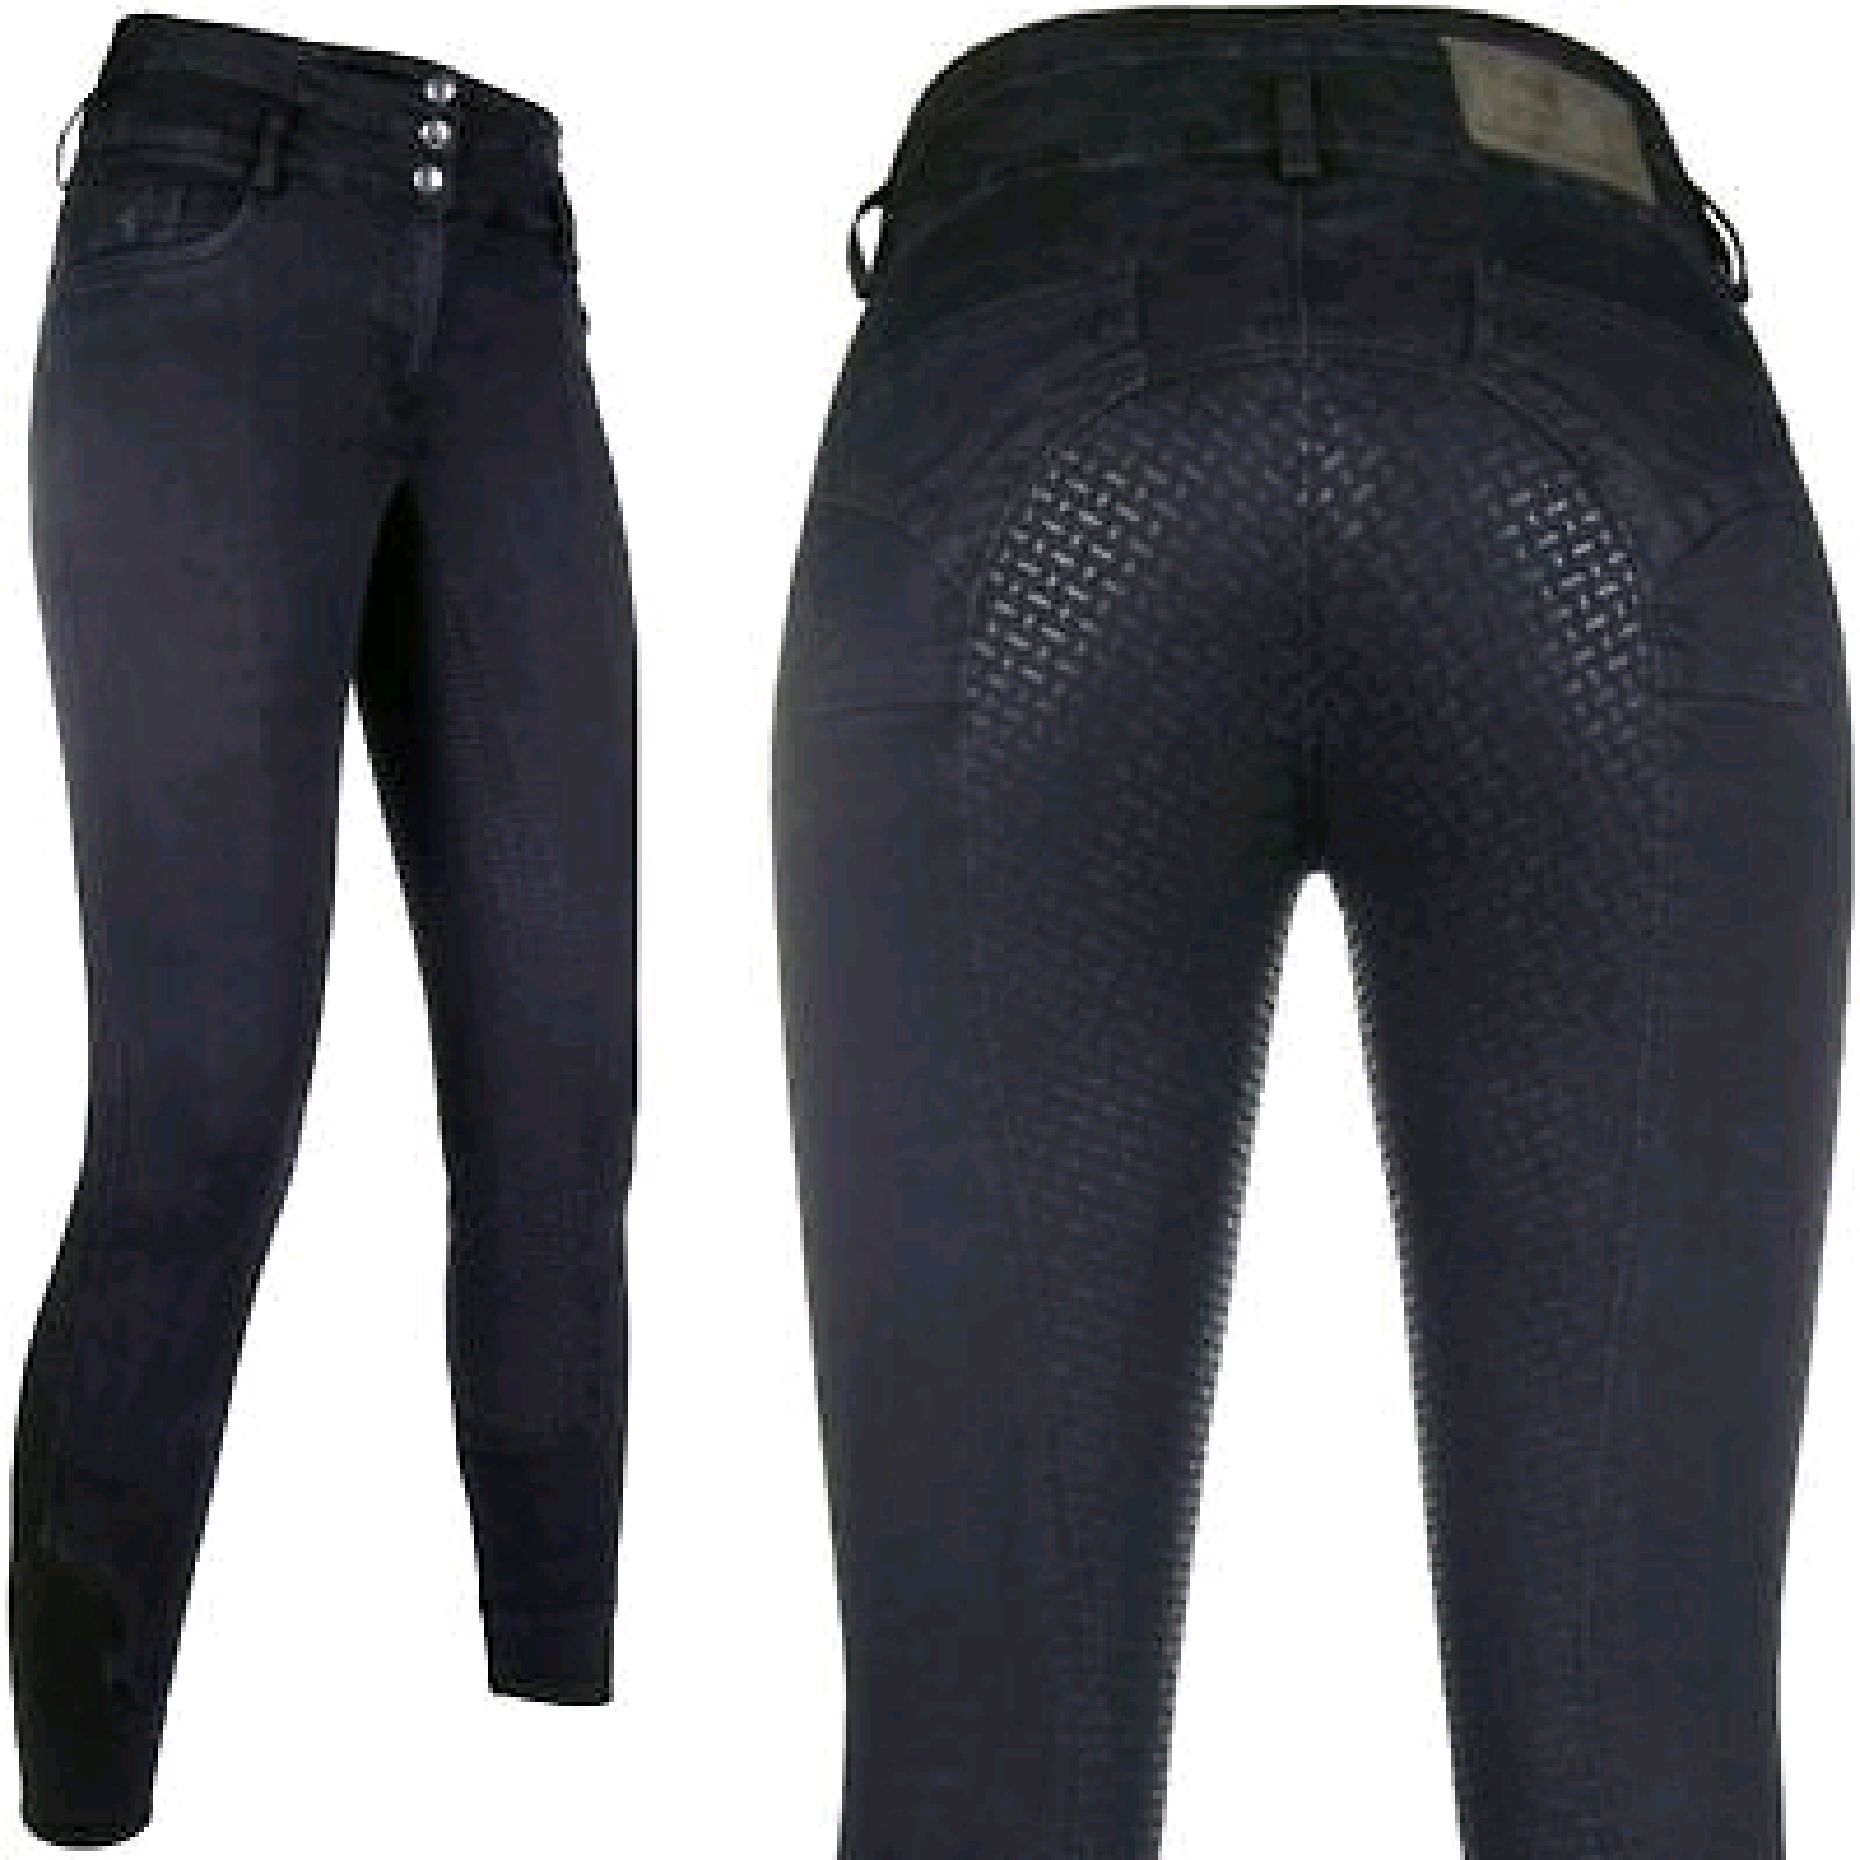 HKM CM Black Denim Jodphurs